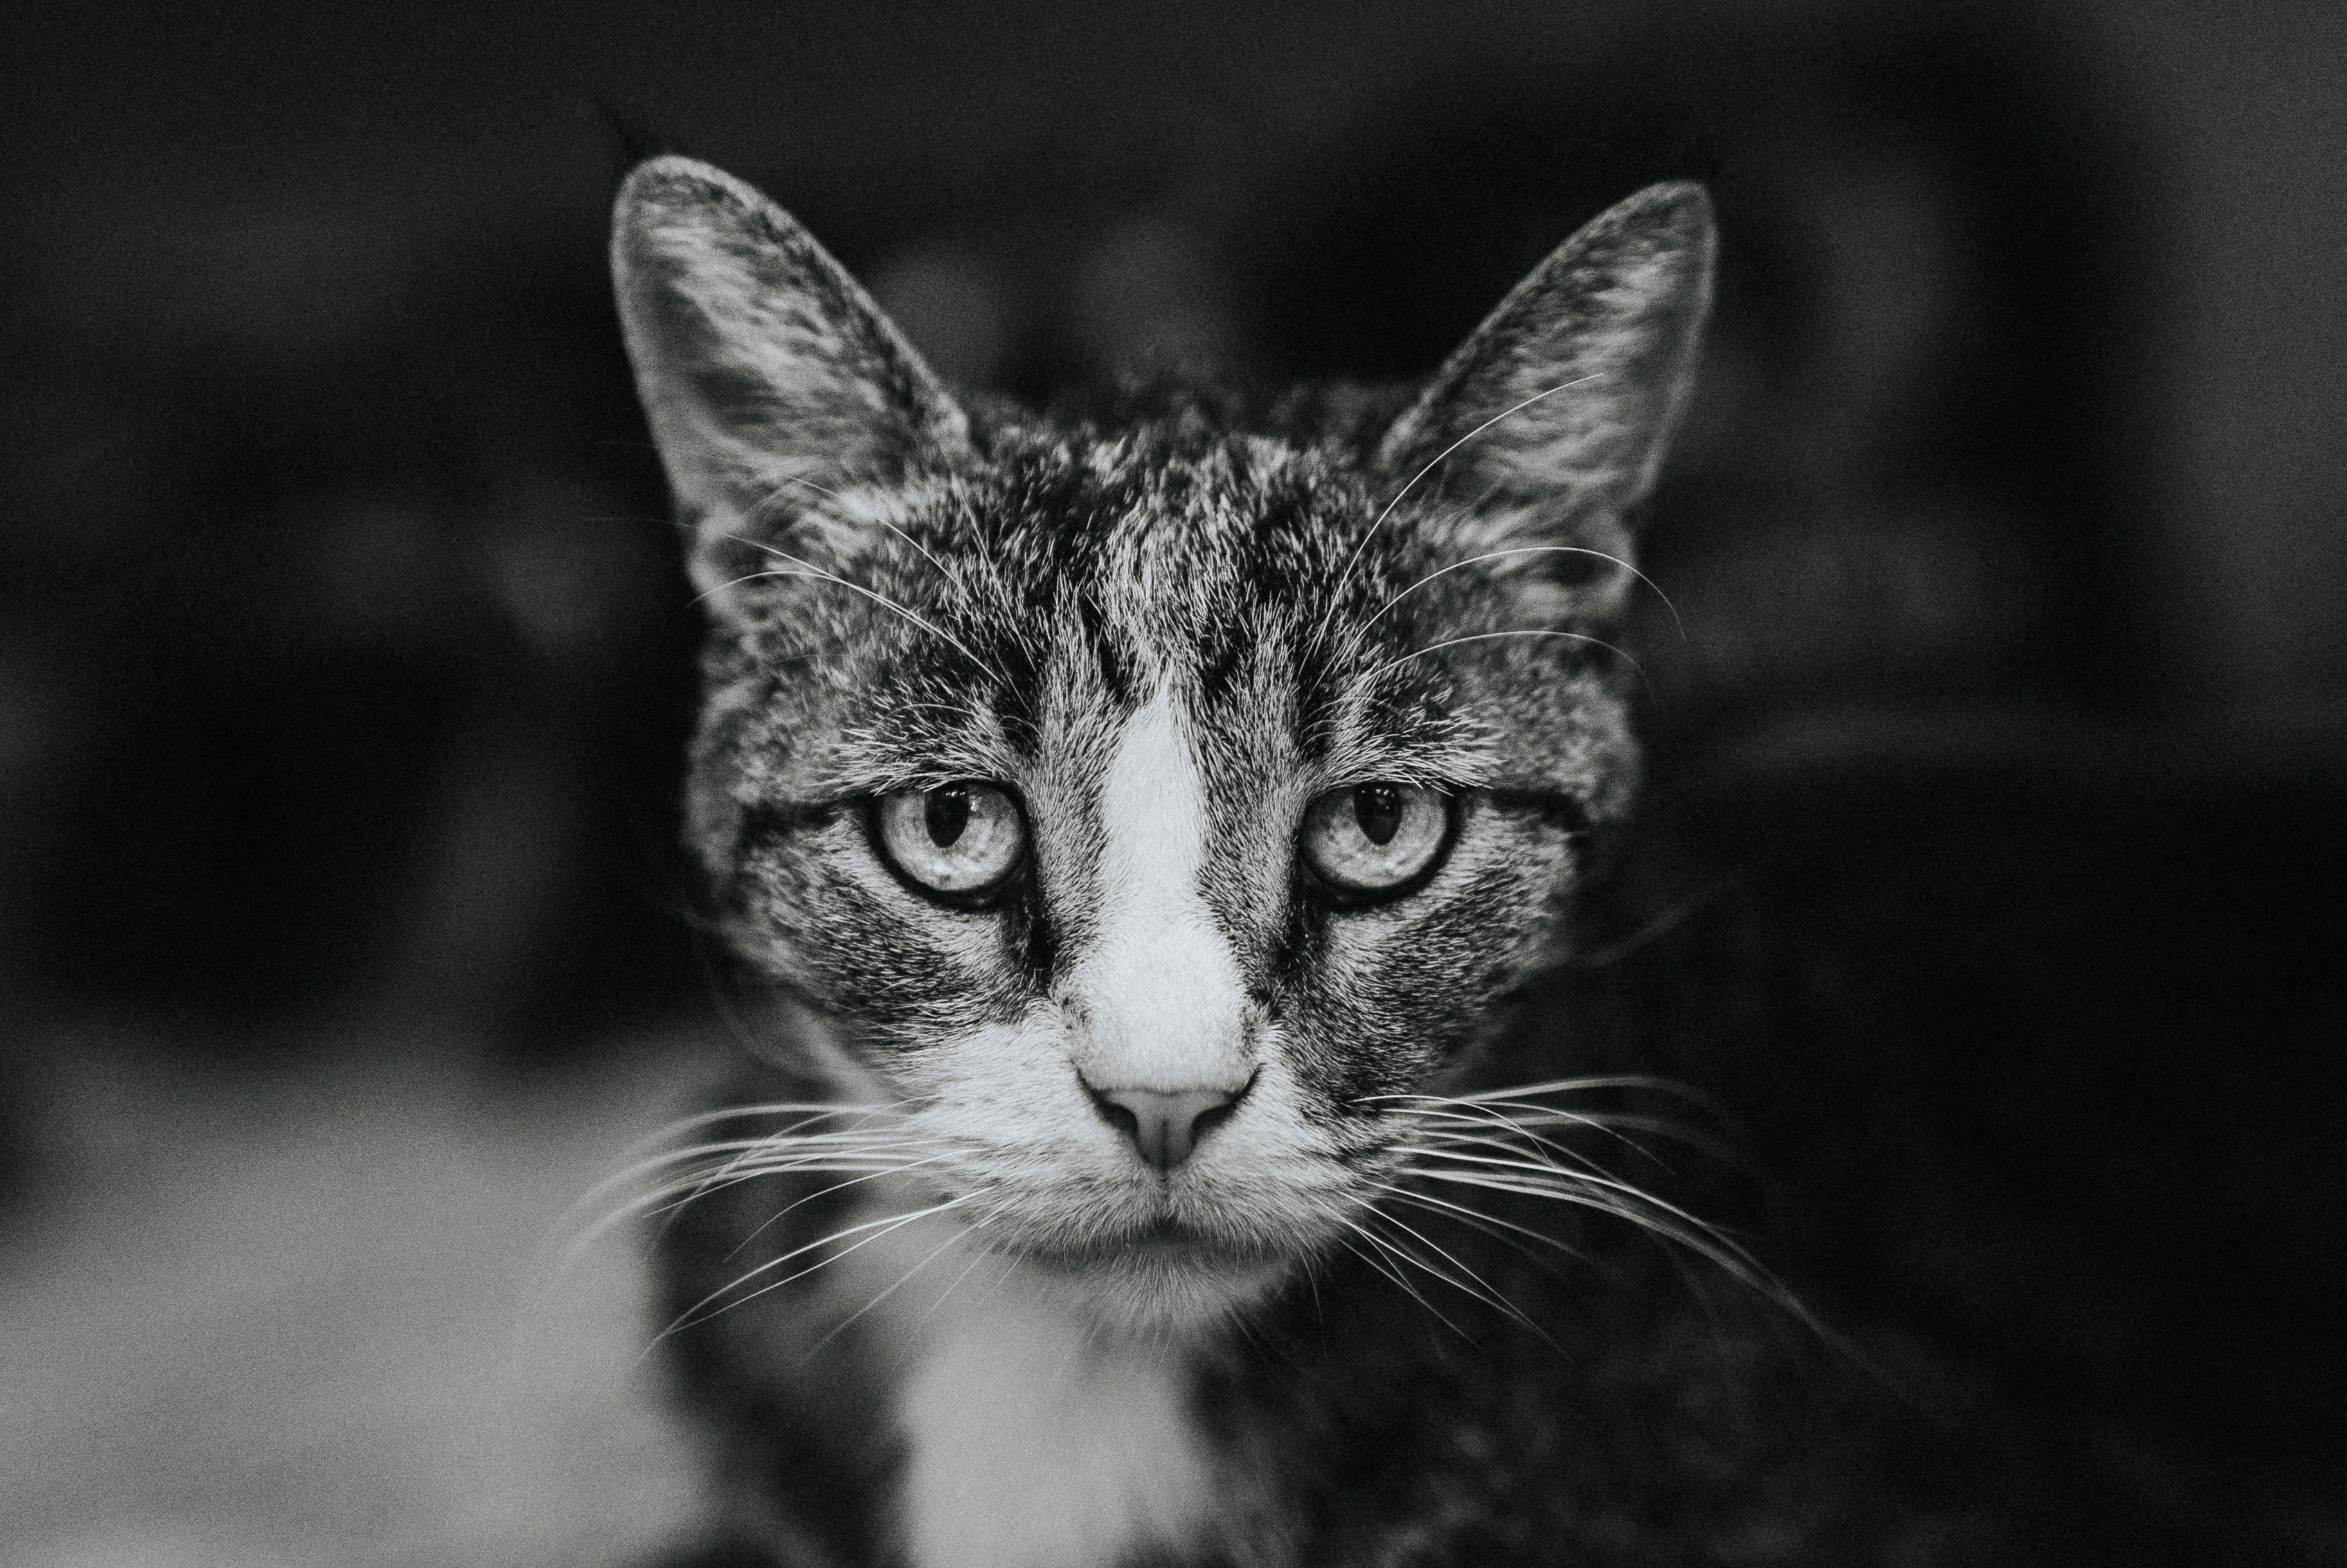 Pain Relief for Cats: What Can I Give My Cat for Pain?